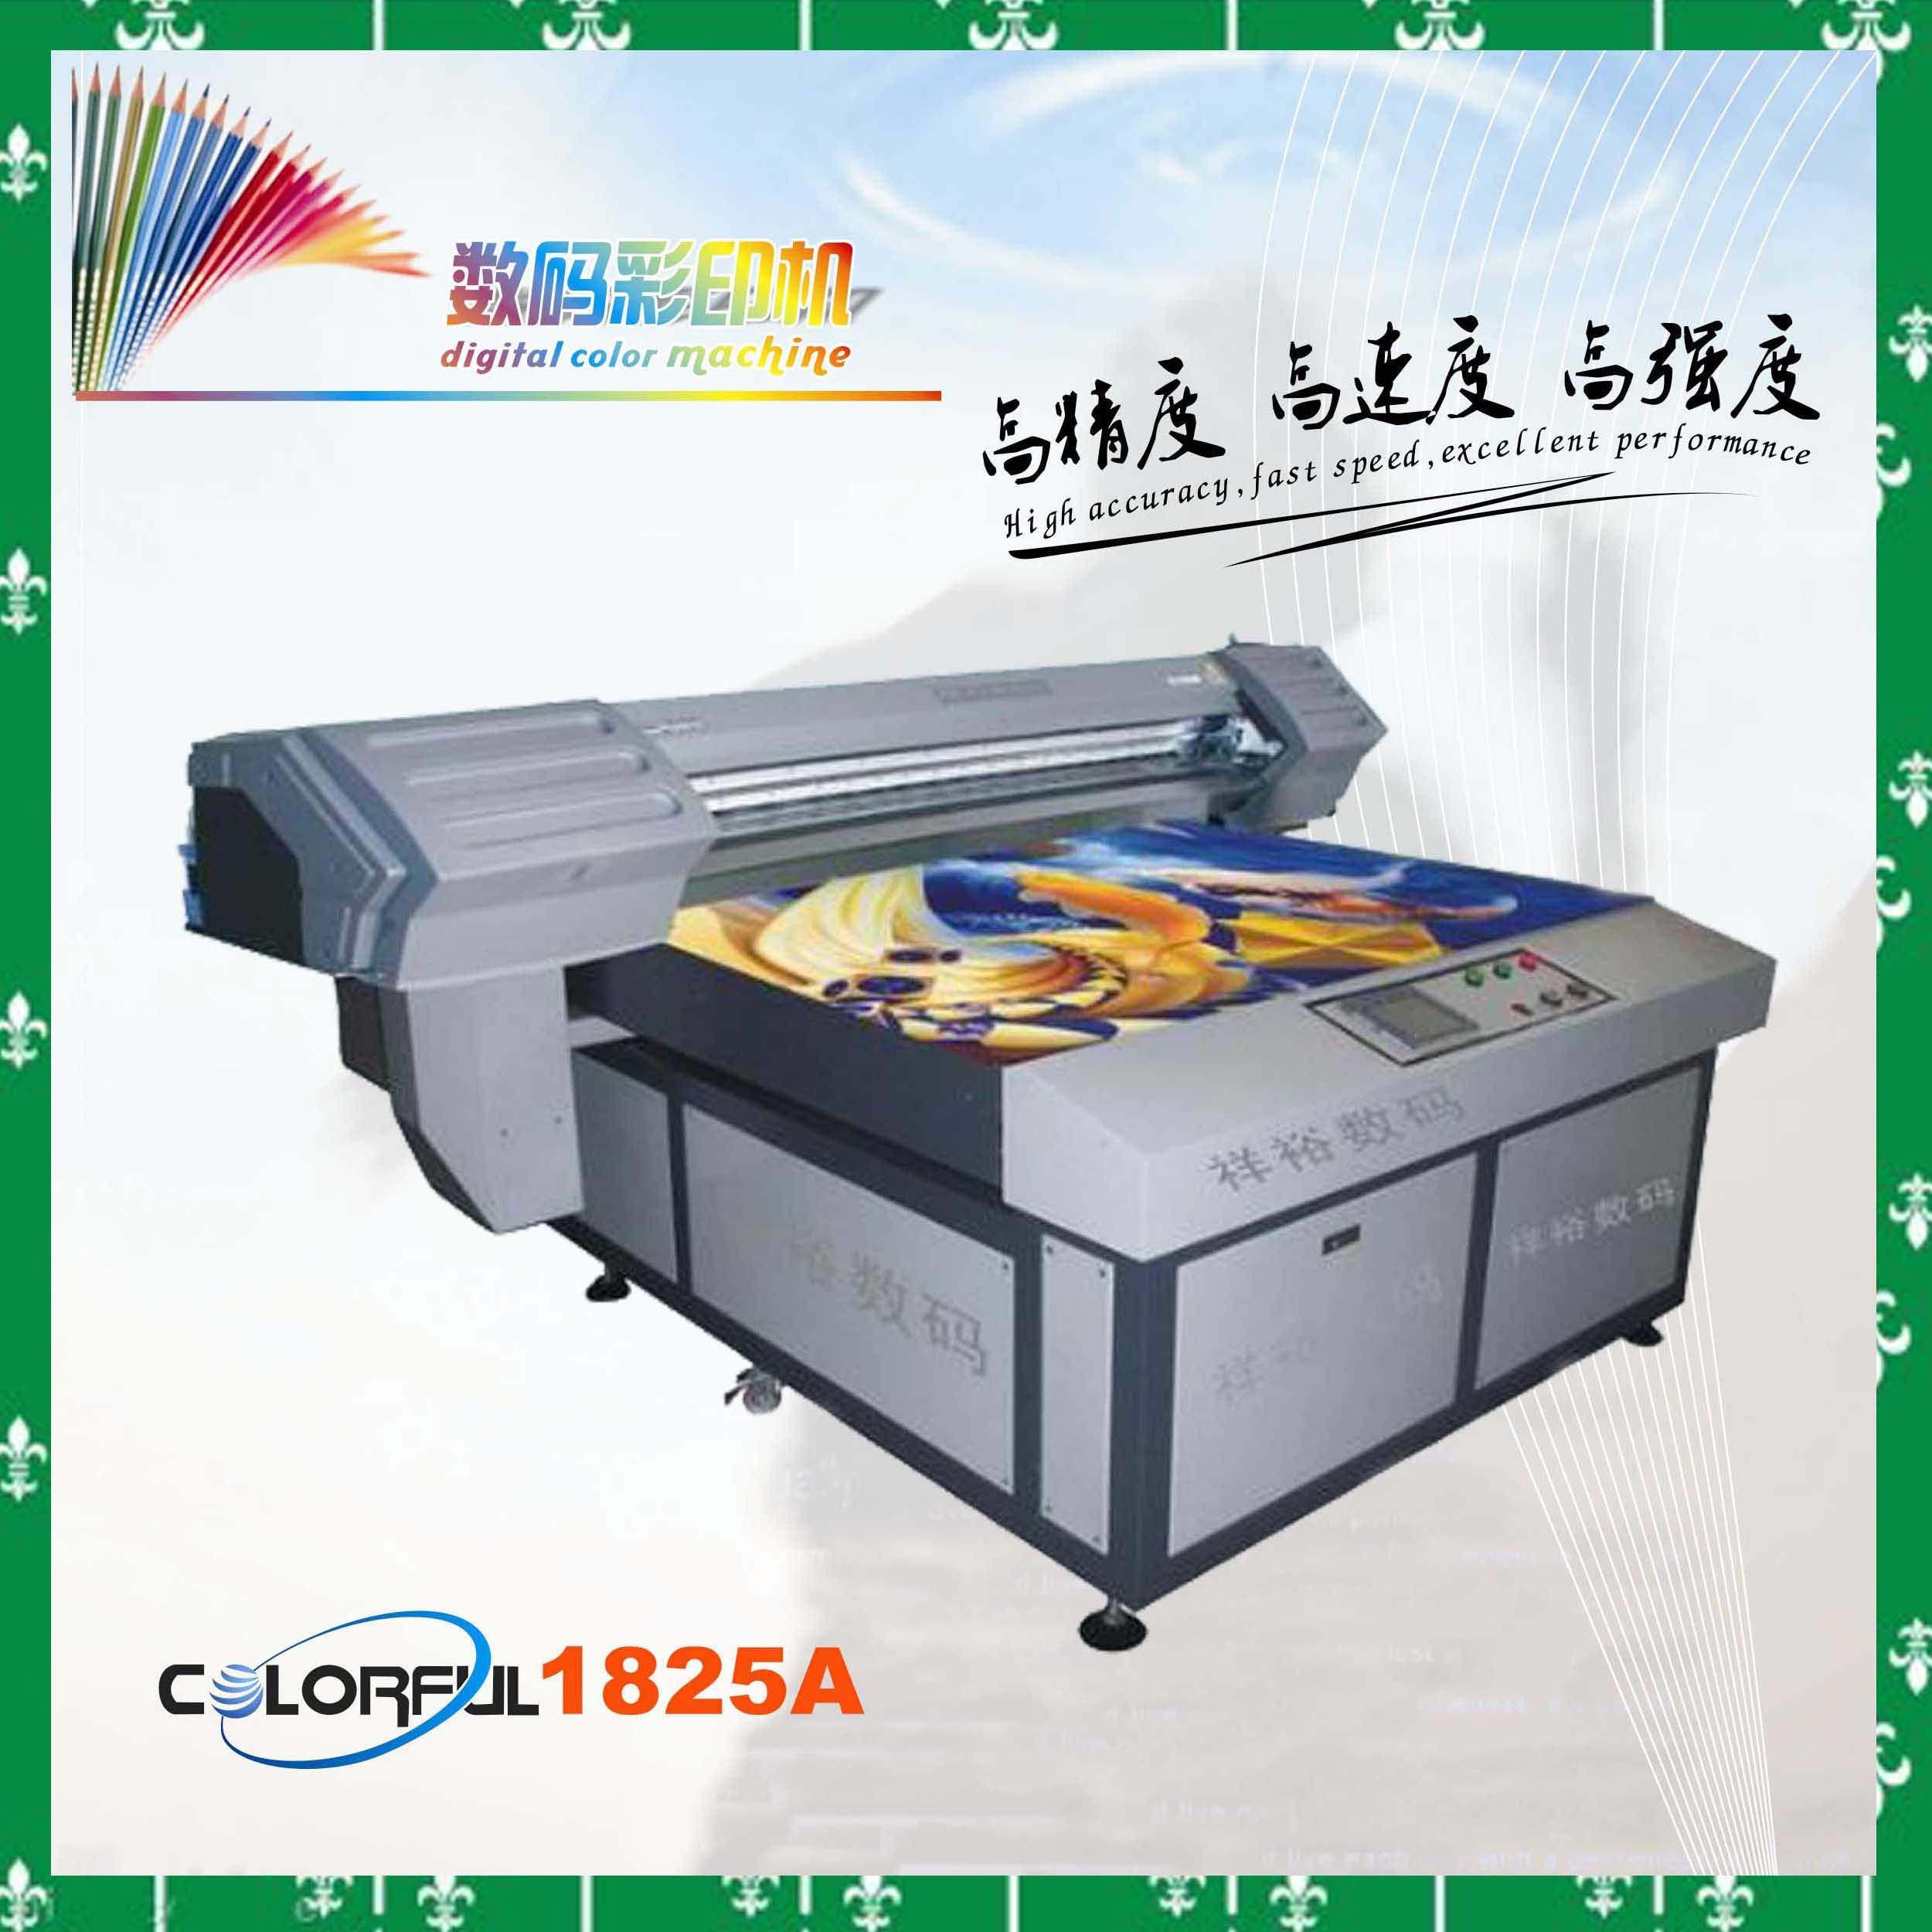 China acrylic and ceramic tiles digital printing machine colorful china acrylic and ceramic tiles digital printing machine colorful 1825a china printing machine acrylic printing machine dailygadgetfo Gallery